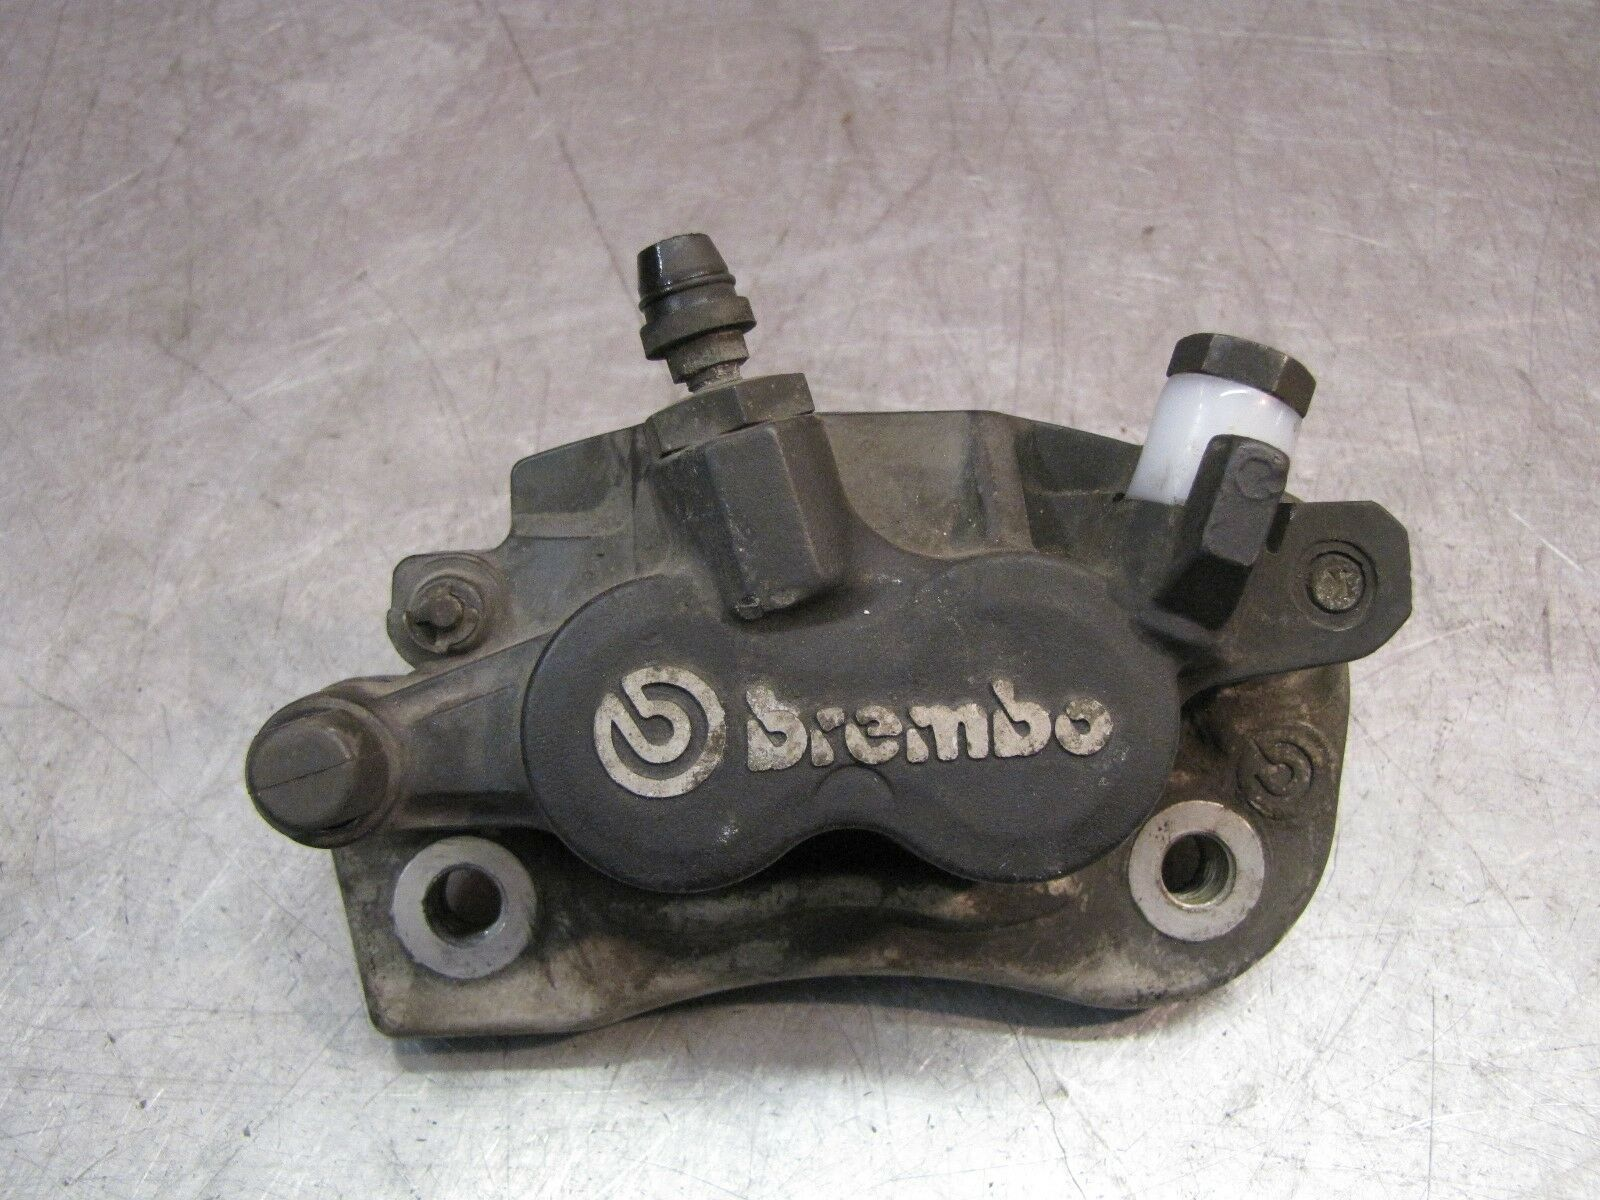 BMW R1100RT ACHTERSTE REMKLAUW Rear Brake Caliper 34212333165 BREMBO